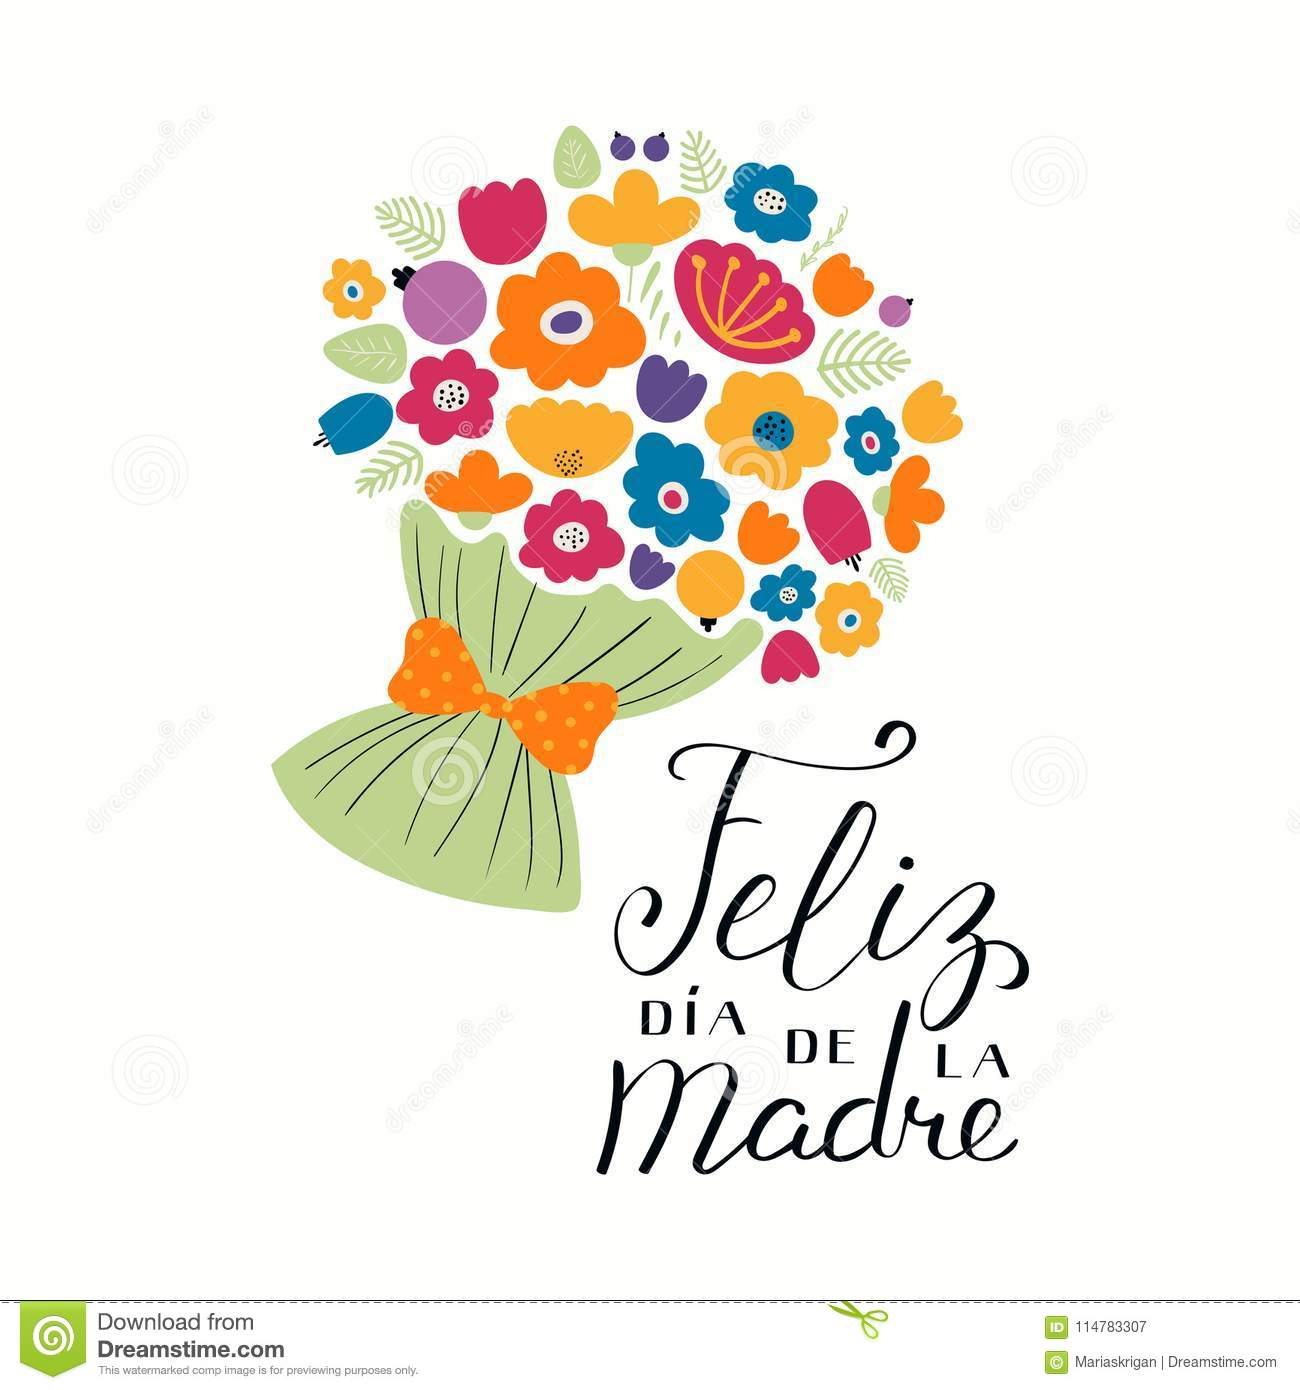 3e45feadac Hand written lettering quote Happy Mothers Day in Spanish, Feliz dia de la  madre, with a bouquet flowers. Isolated on white background. Vector  illustration.